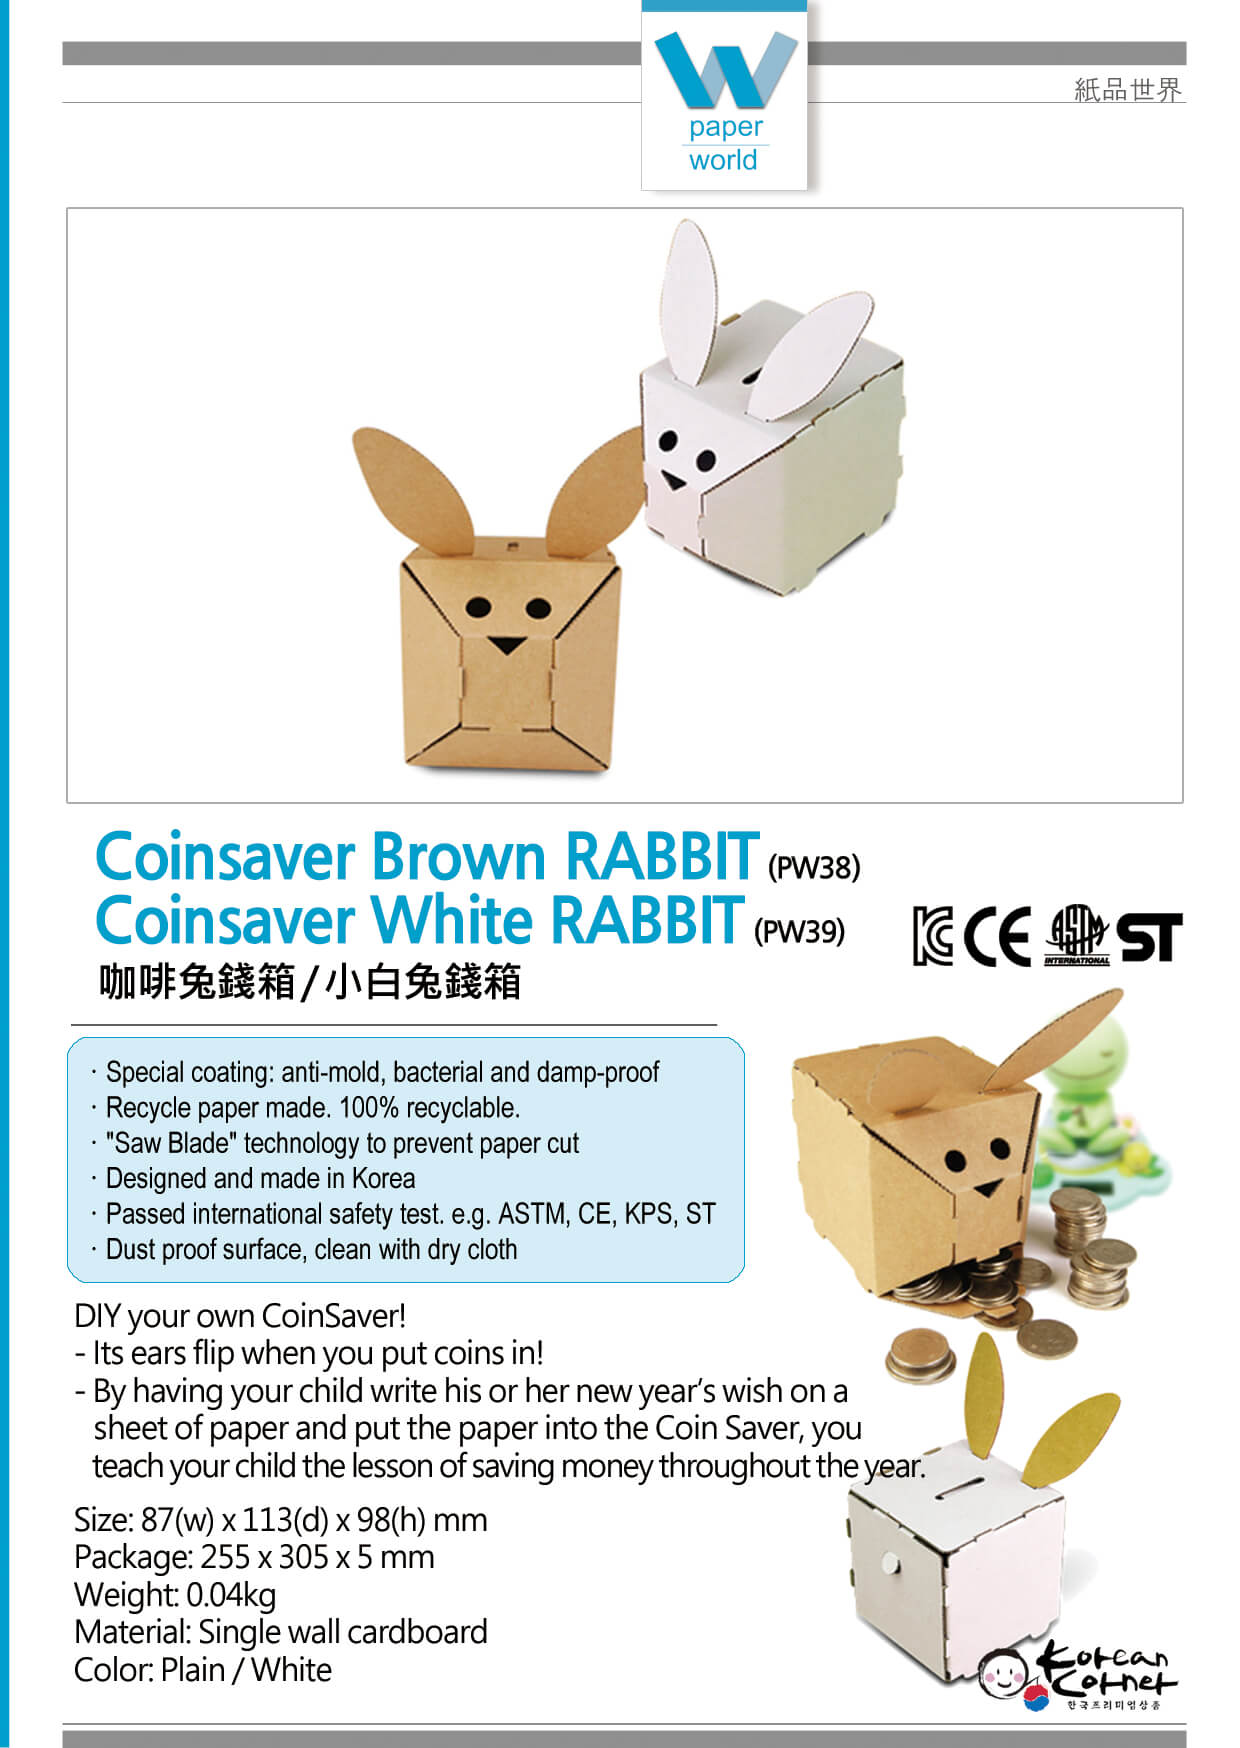 Coinsaver RABBIT